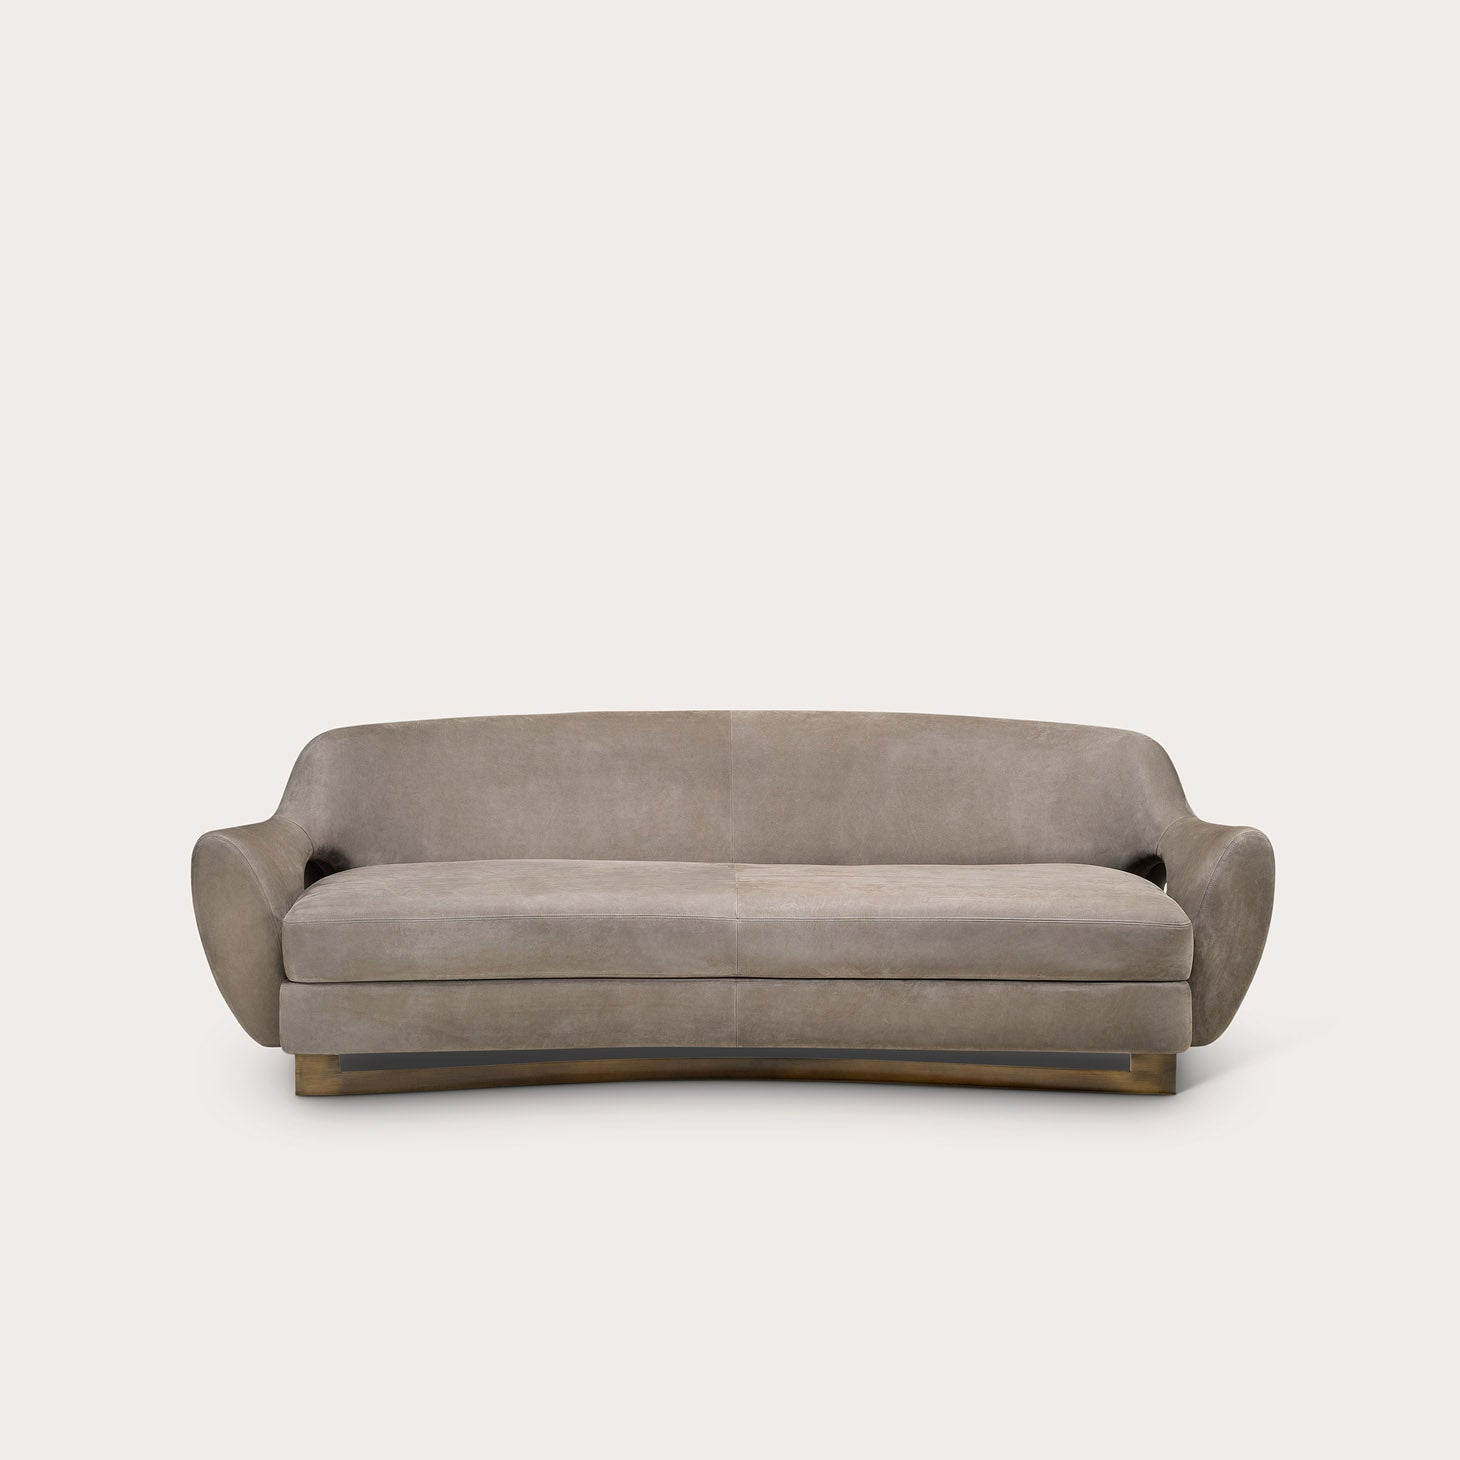 Gumi Seating Bruno Moinard Designer Furniture Sku: 773-240-10012